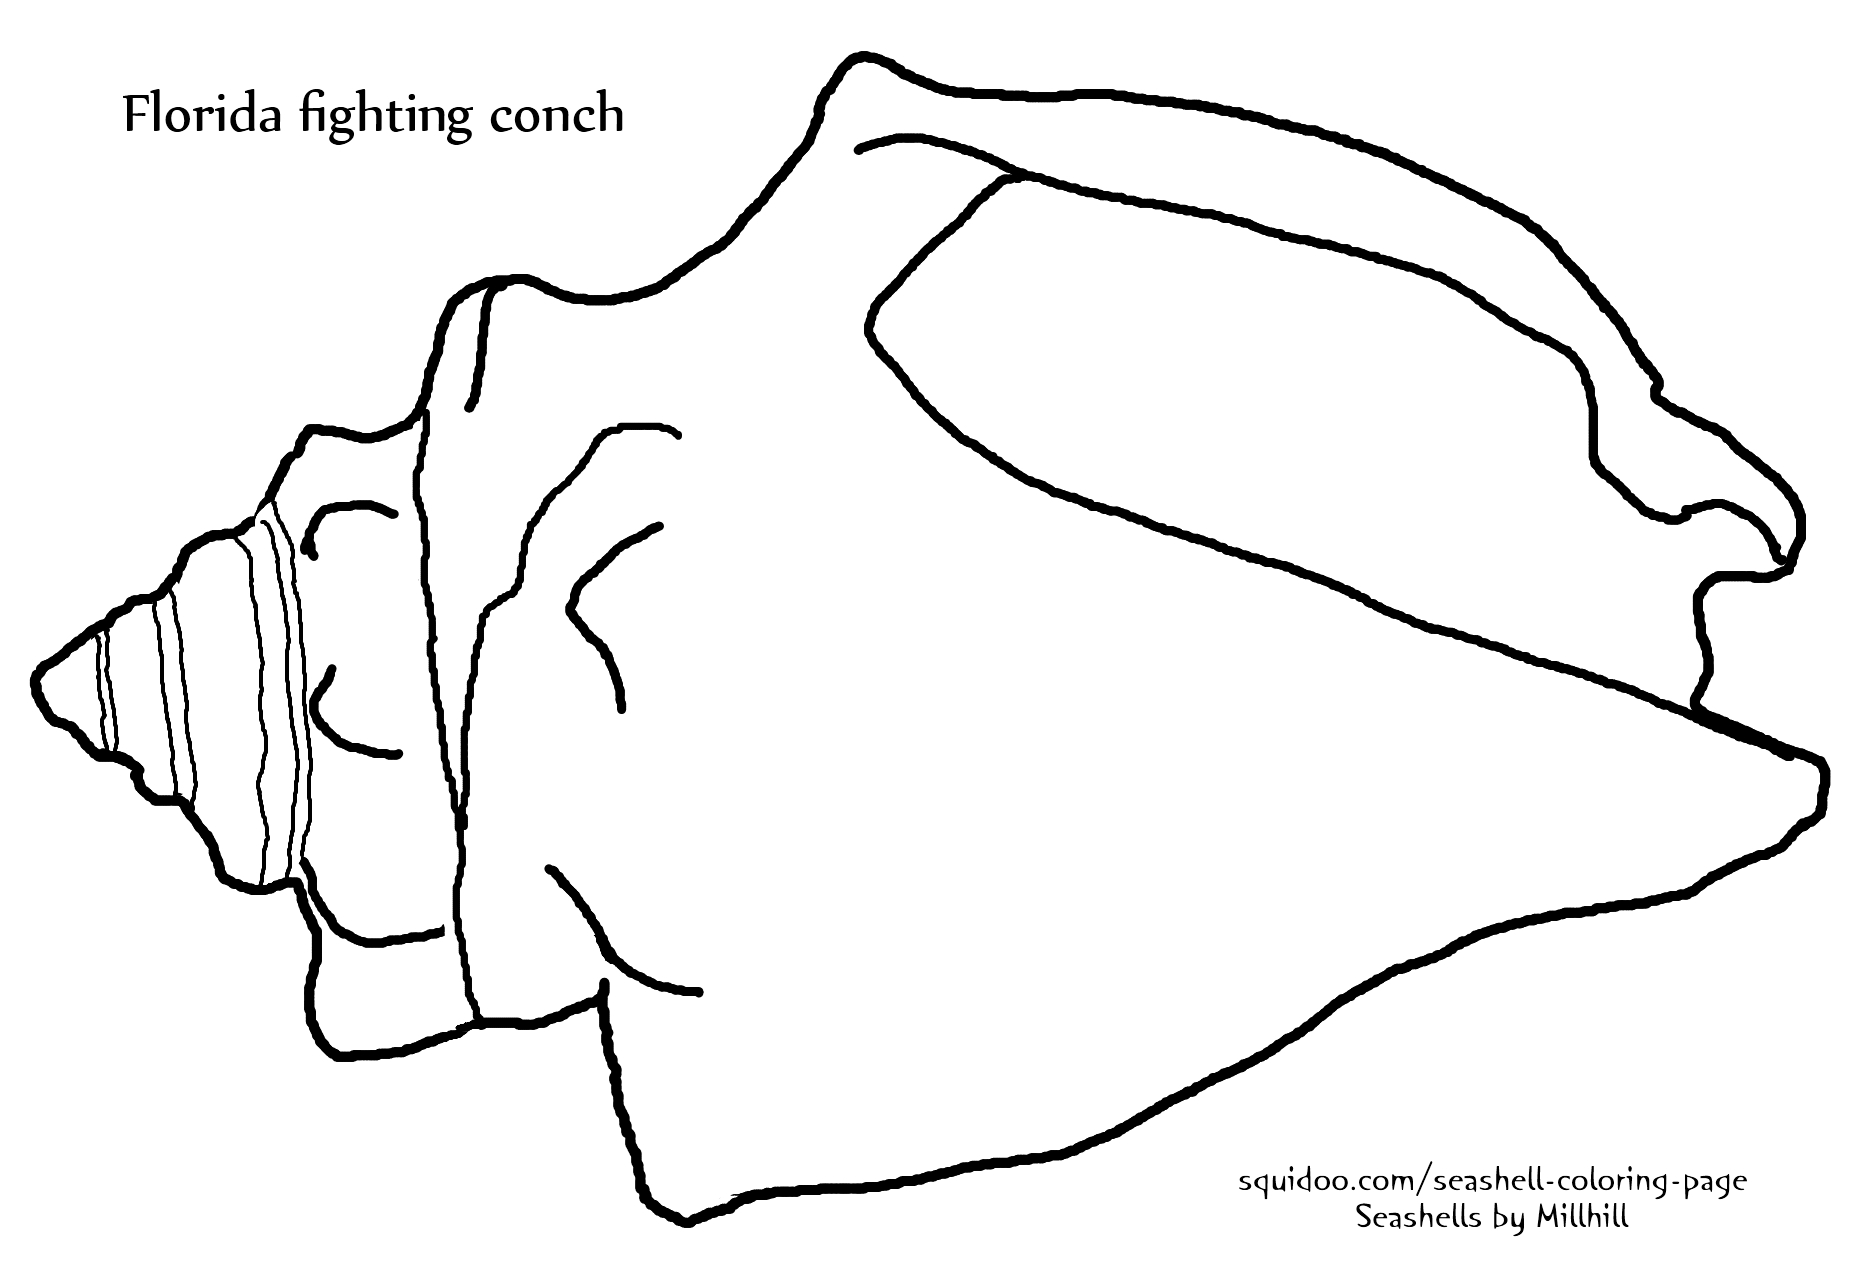 Drawn shell queen conch Seashells fighting by shell conch